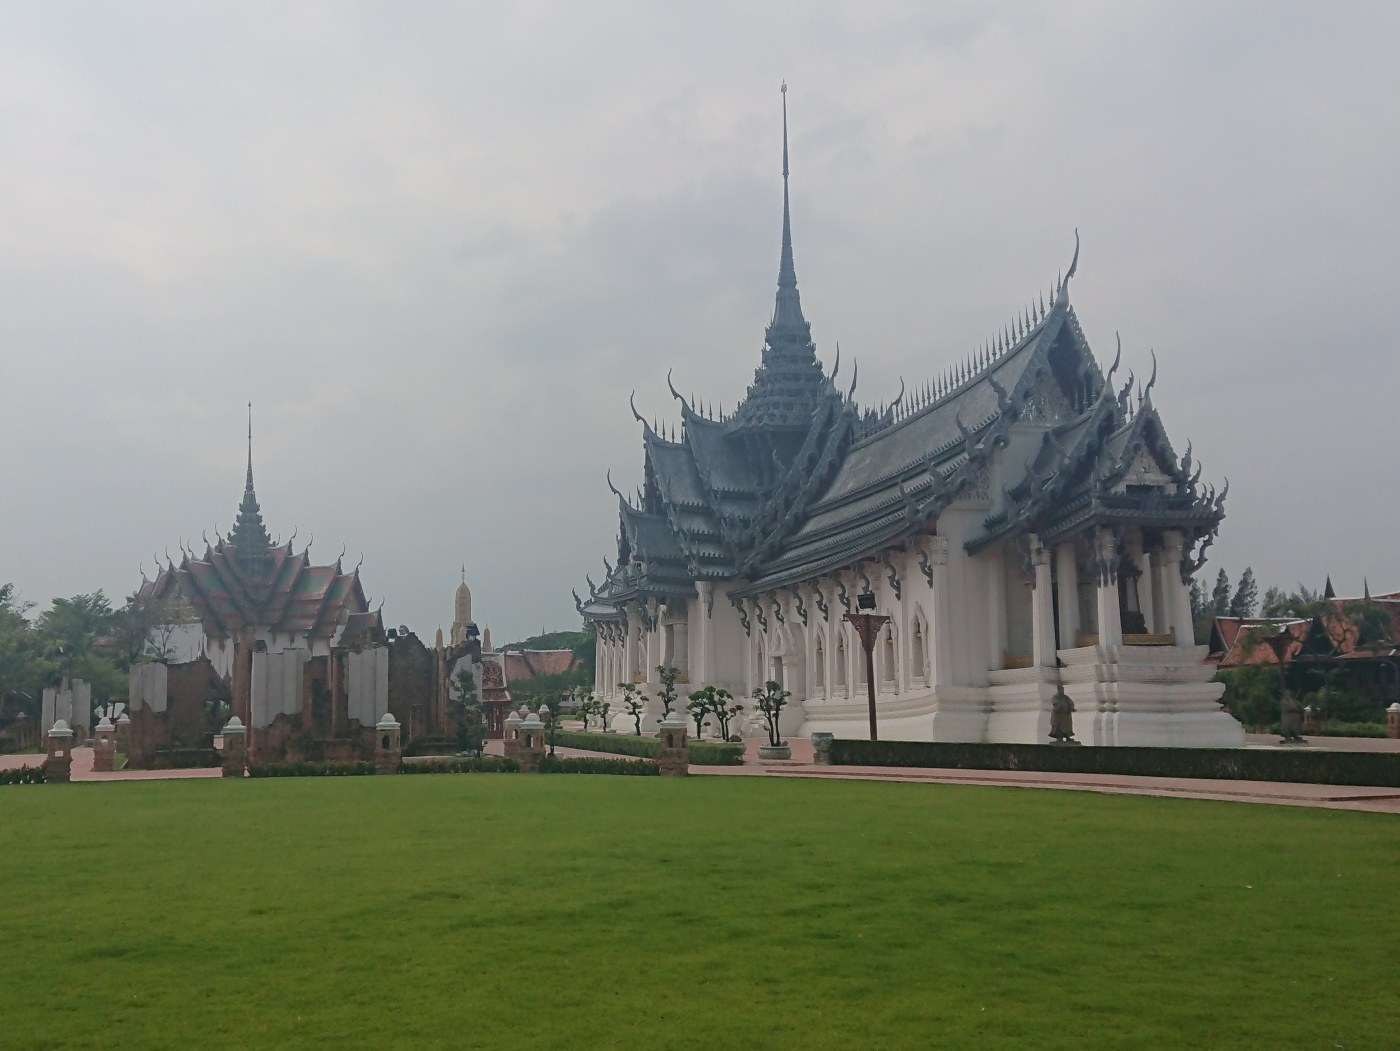 Reconstruction of the Sanphet Prasat Palace in Ayutthaya